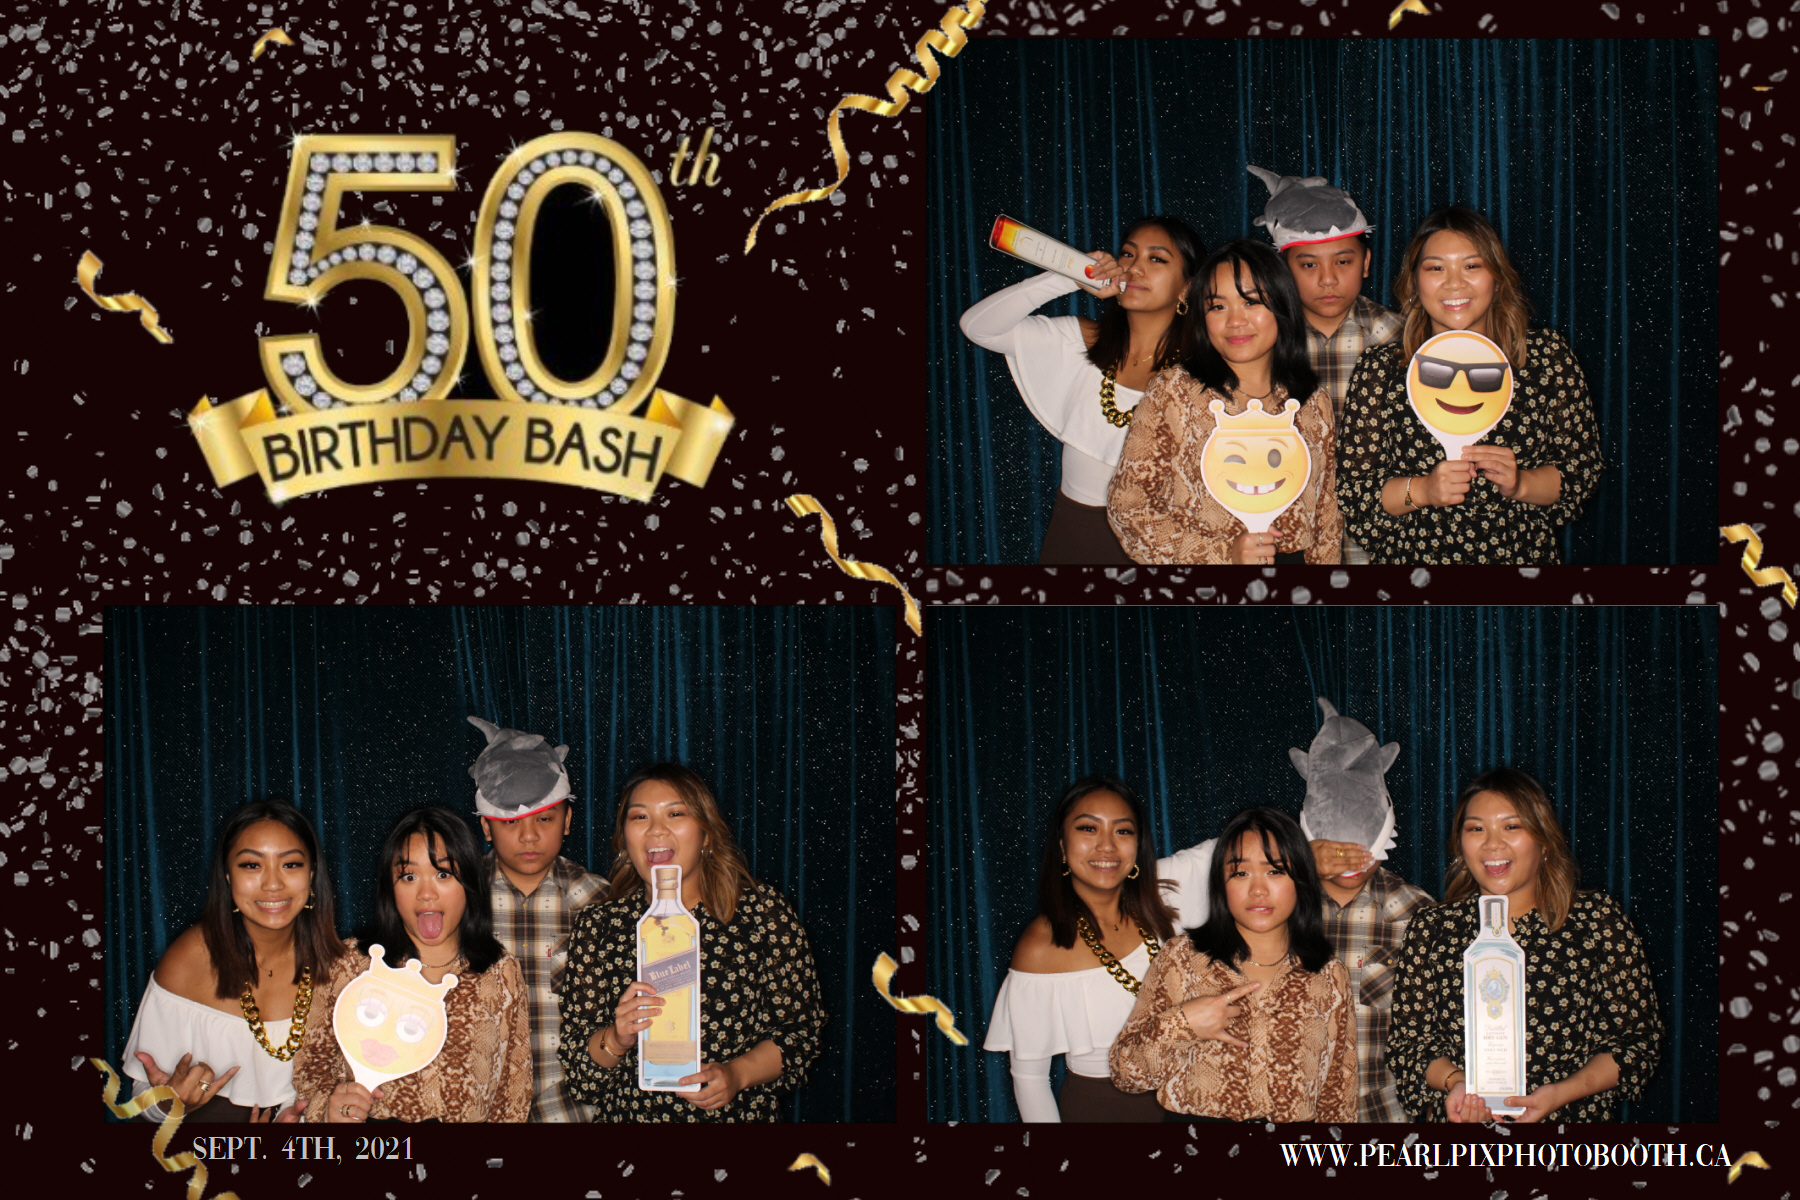 Peter_s 50th Bday_38